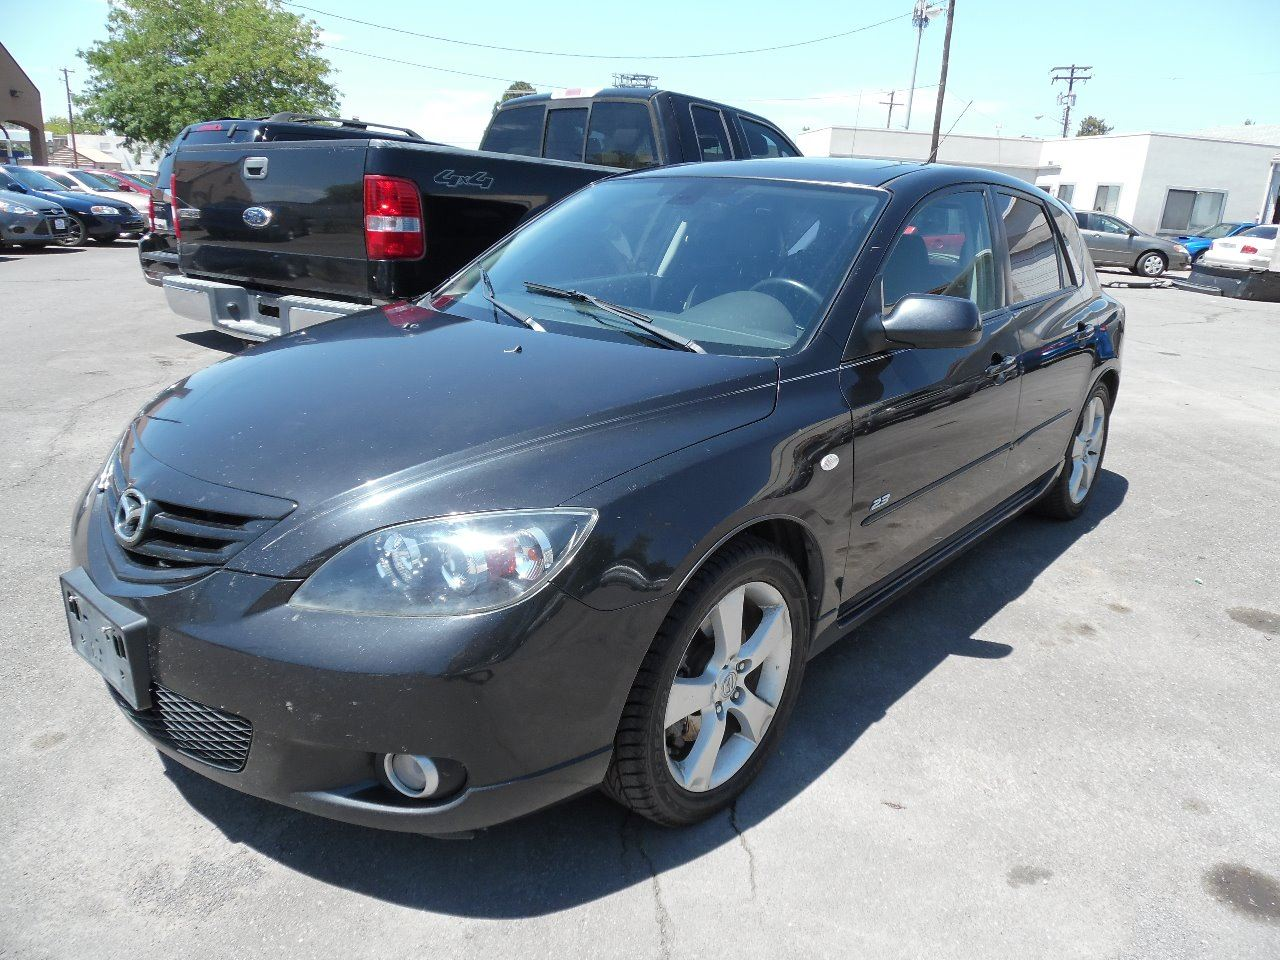 2006 mazda mazda3 s grand touring 4dr wagon in clearfield ut beutler auto sales. Black Bedroom Furniture Sets. Home Design Ideas